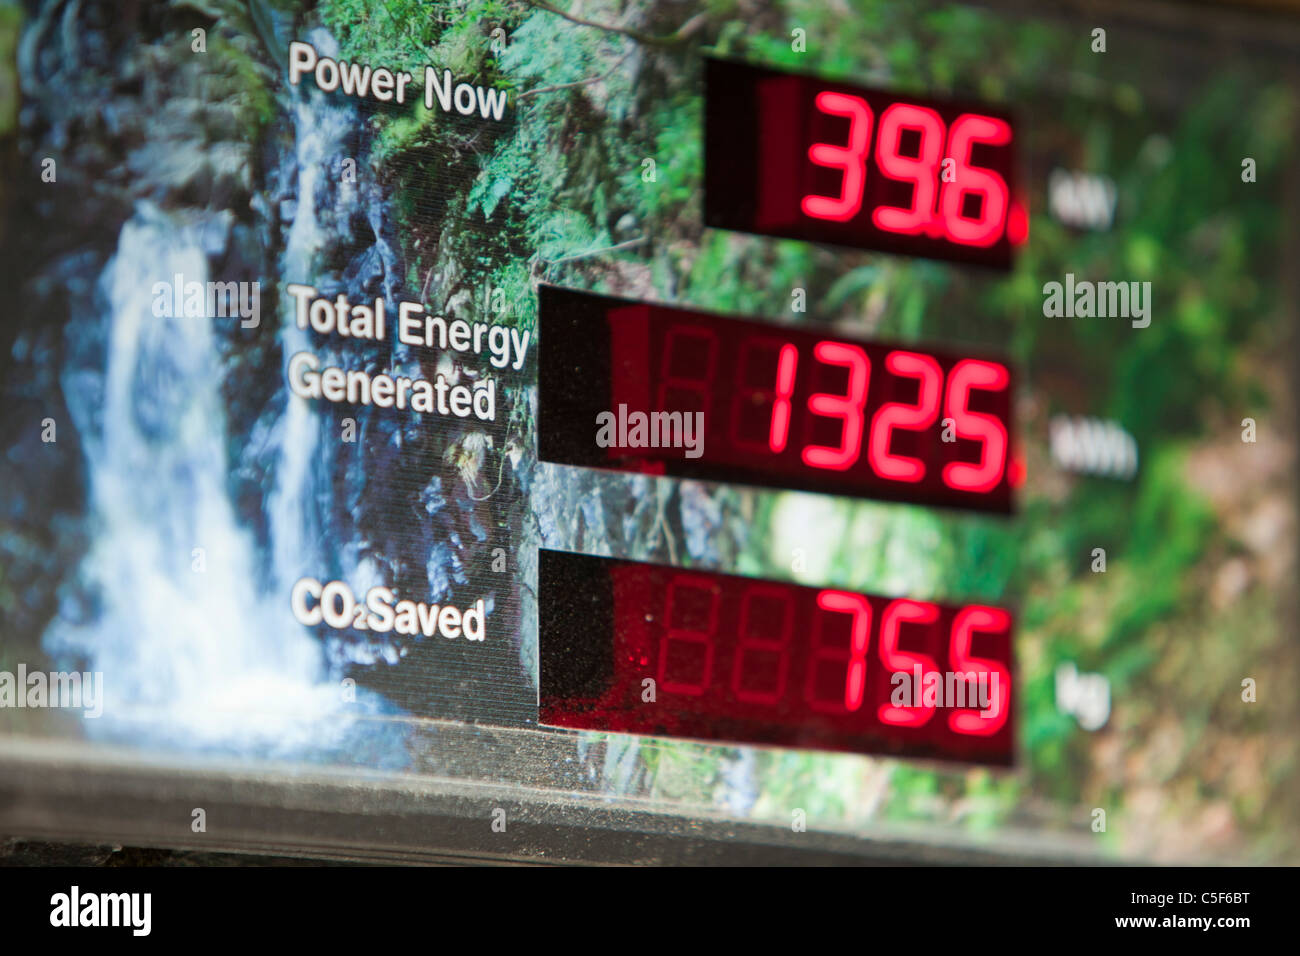 A display board showing the amount of renewable energy being generated by the micro hydro turbine in the grounds - Stock Image